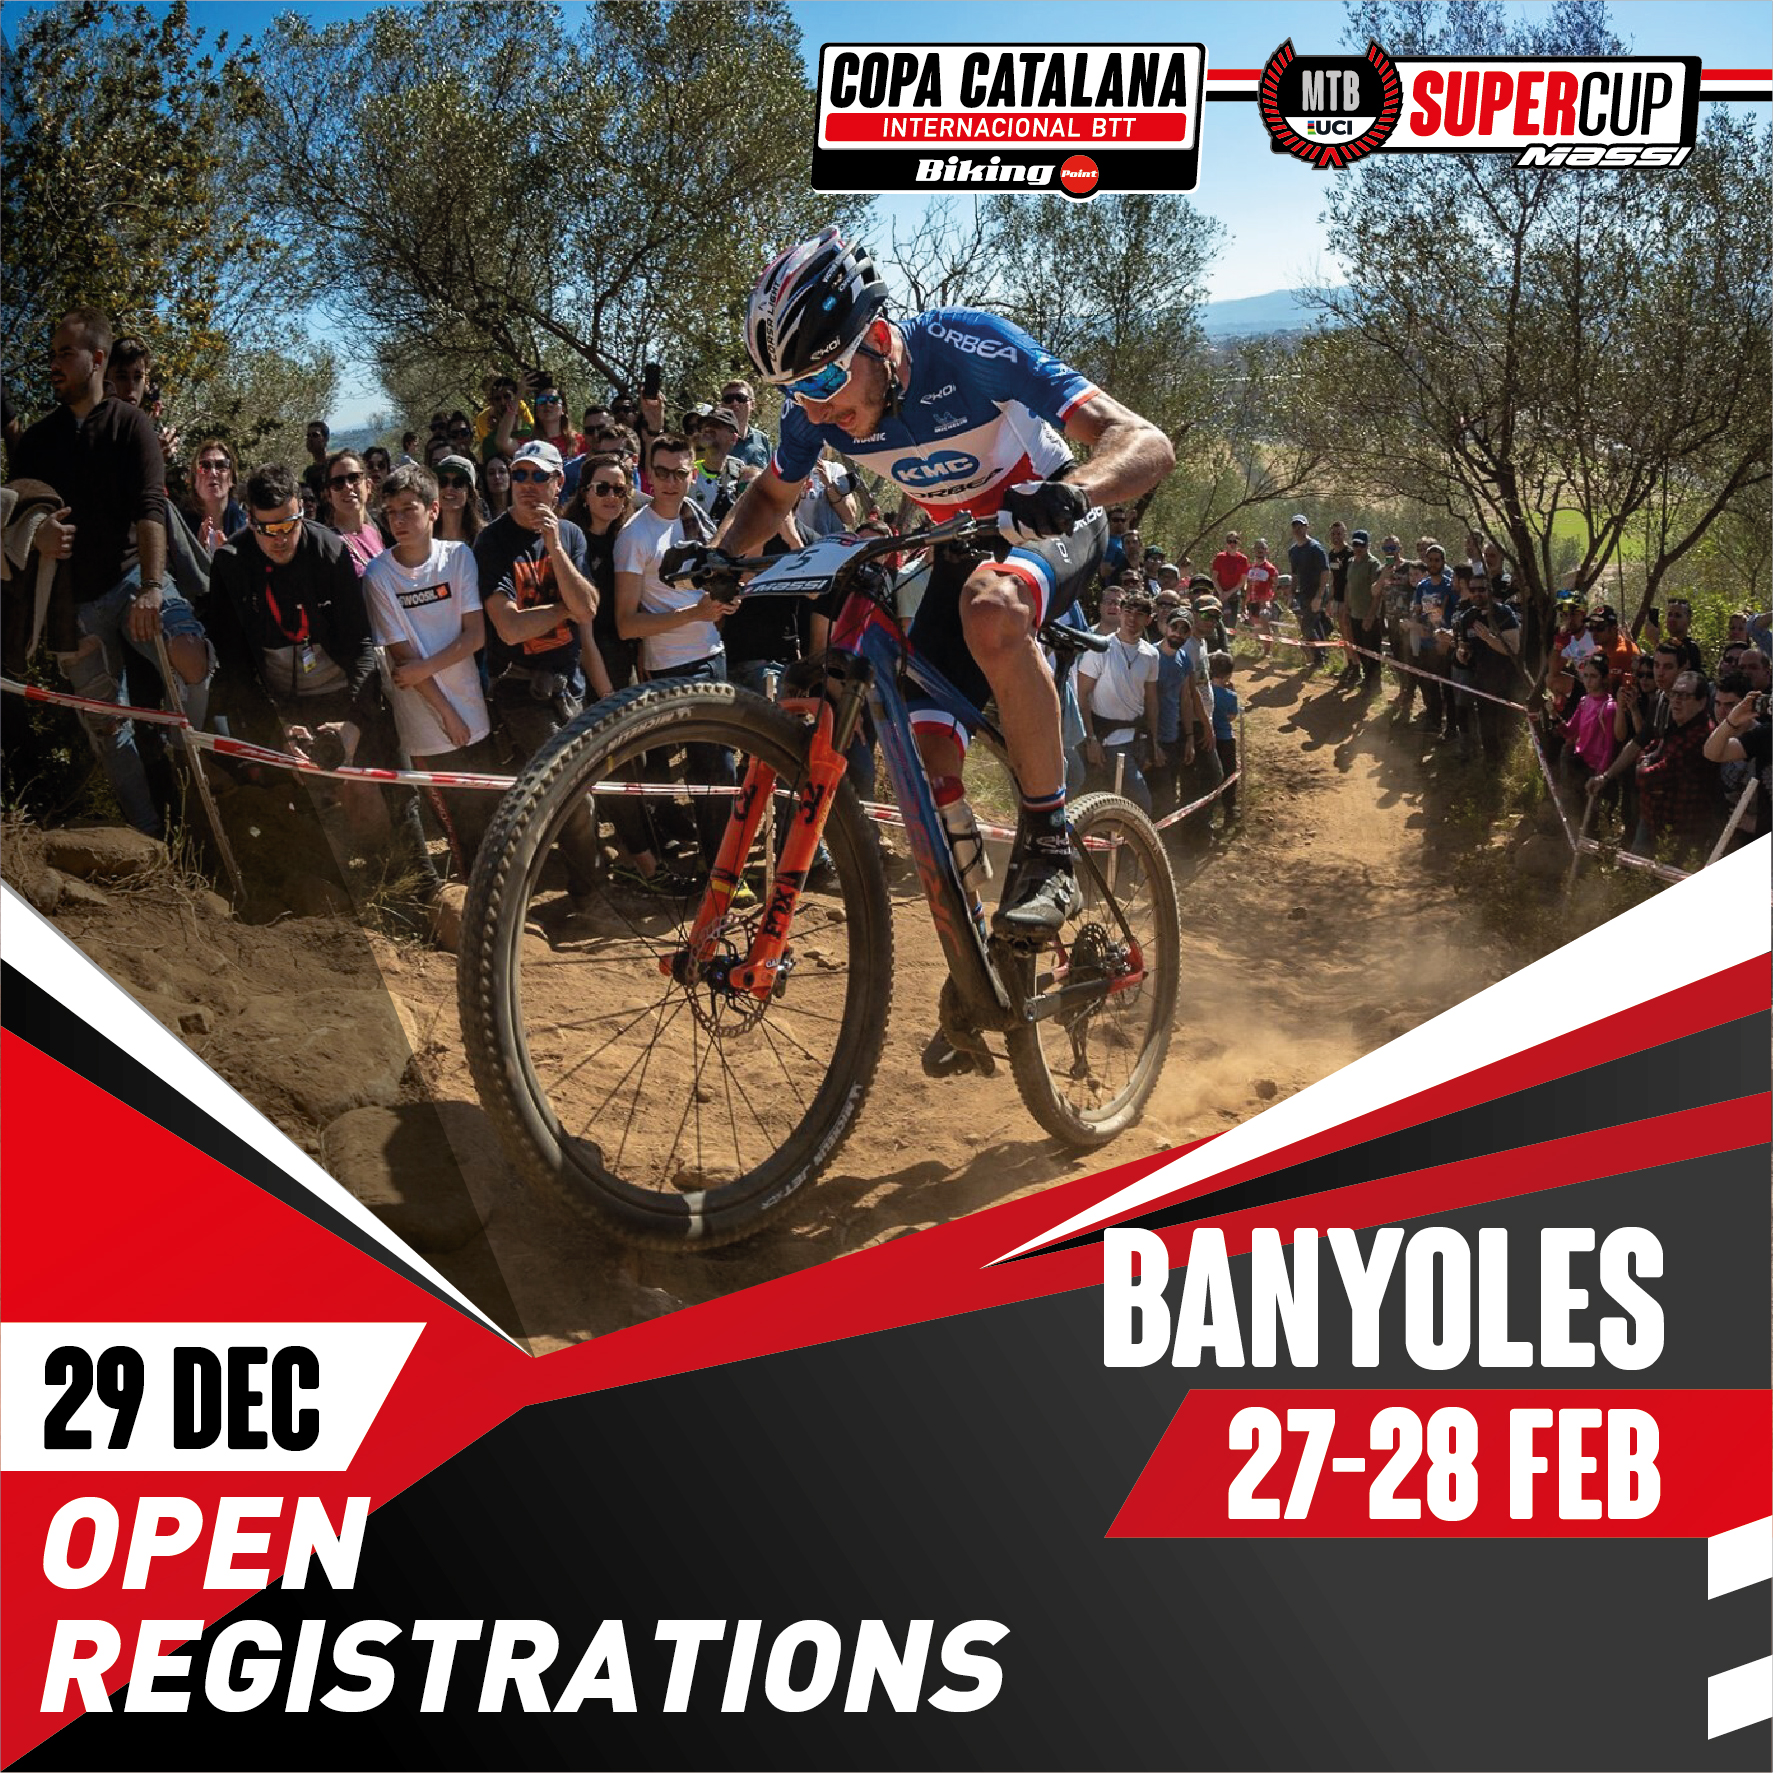 REGISTRATION FOR THE SUPER CUP MASSI IN BANYOLES WILL OPEN ON 29 DECEMBER